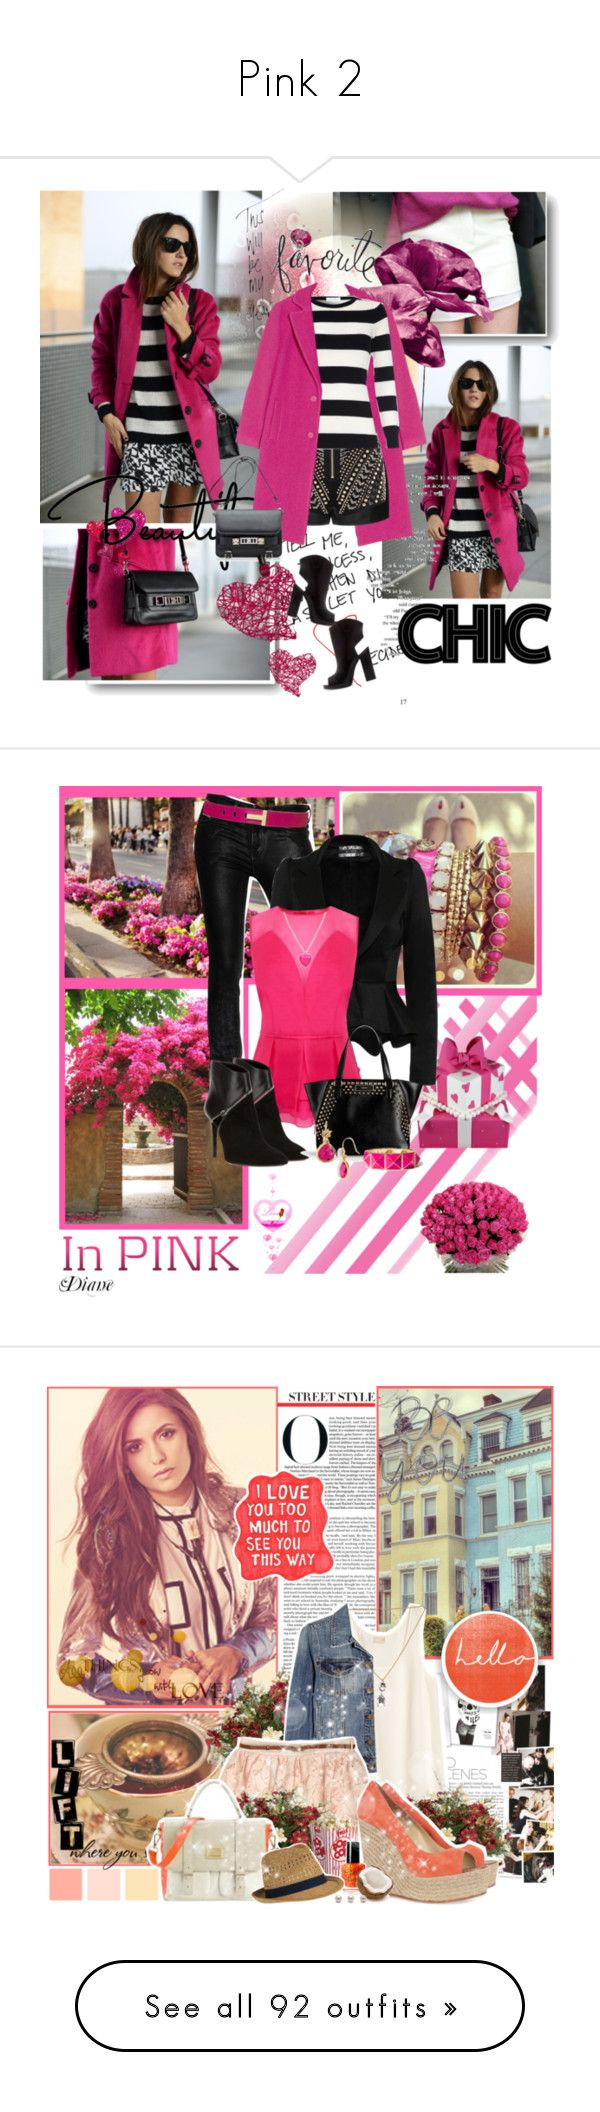 """""""Pink 2"""" by par0dise ❤ liked on Polyvore featuring DKNY, Topshop, Truths, Proenza Schouler, Piaget, Zara, Heidi Swapp, Tom Binns, Diesel Black Gold and Coast"""